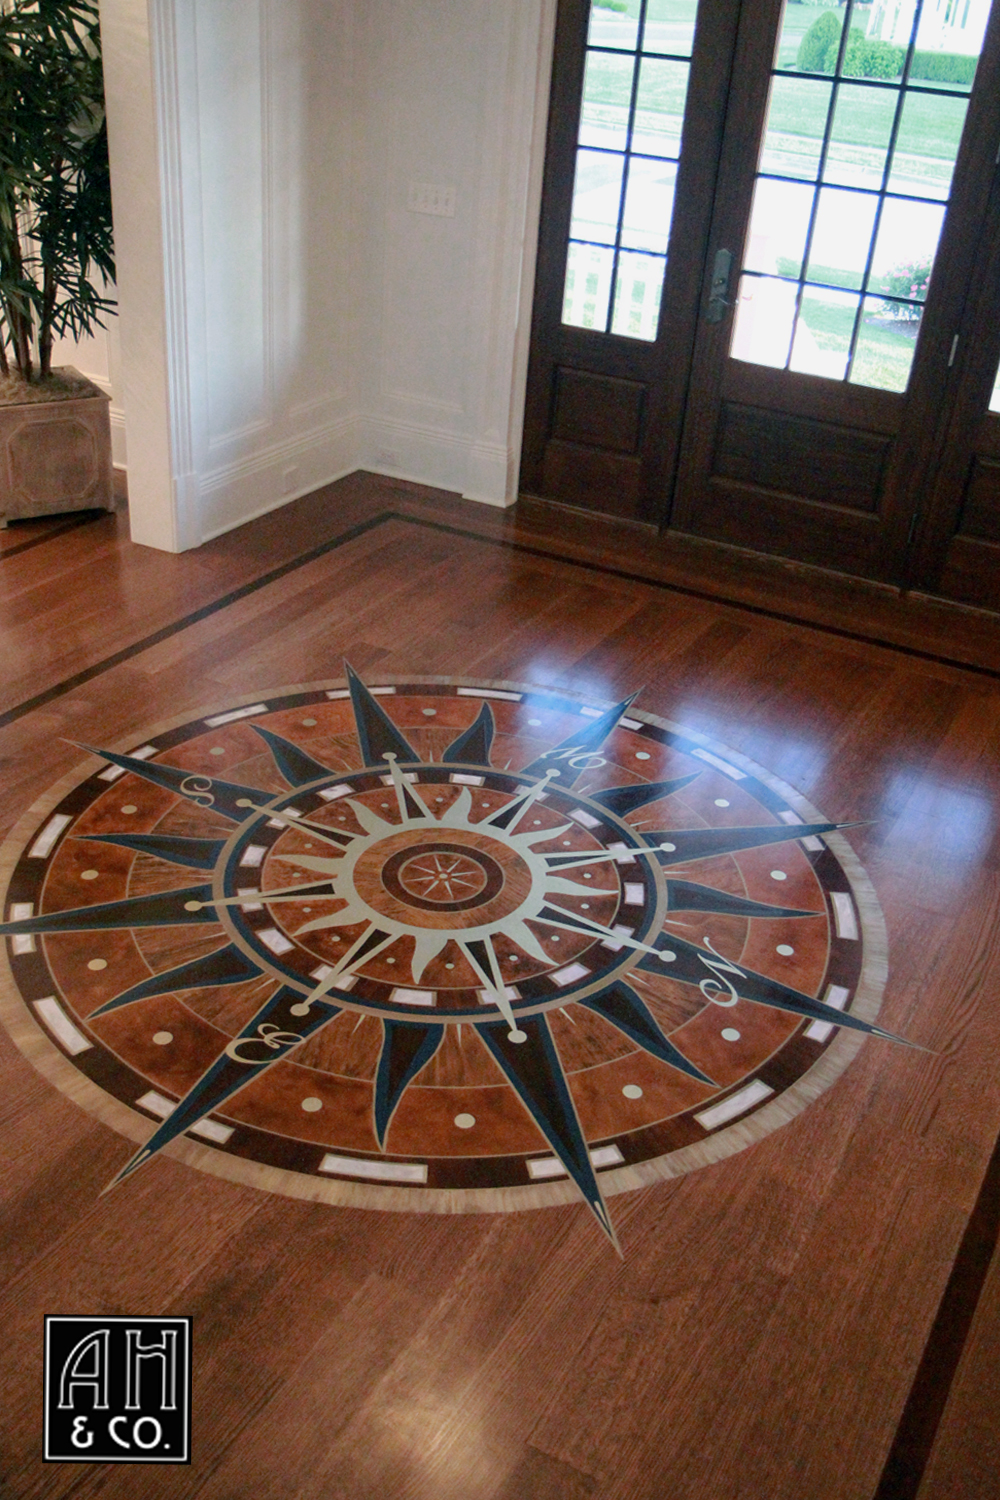 Spring lake nj hand painted entry floor sun theme compass rose